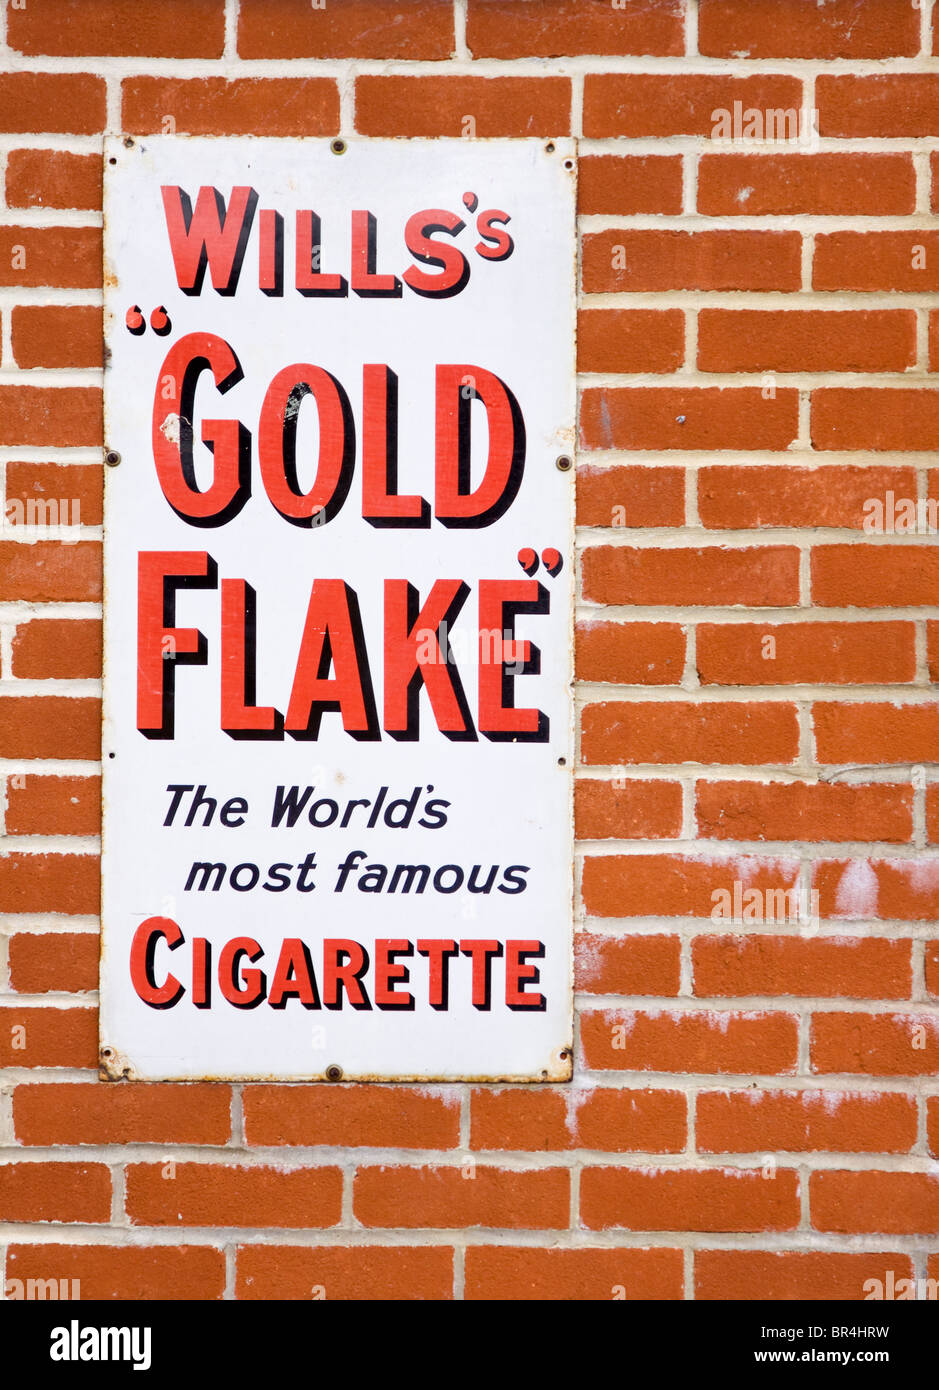 Old metal advertising sign for Wills's Gold Flake Cigarettes - Stock Image